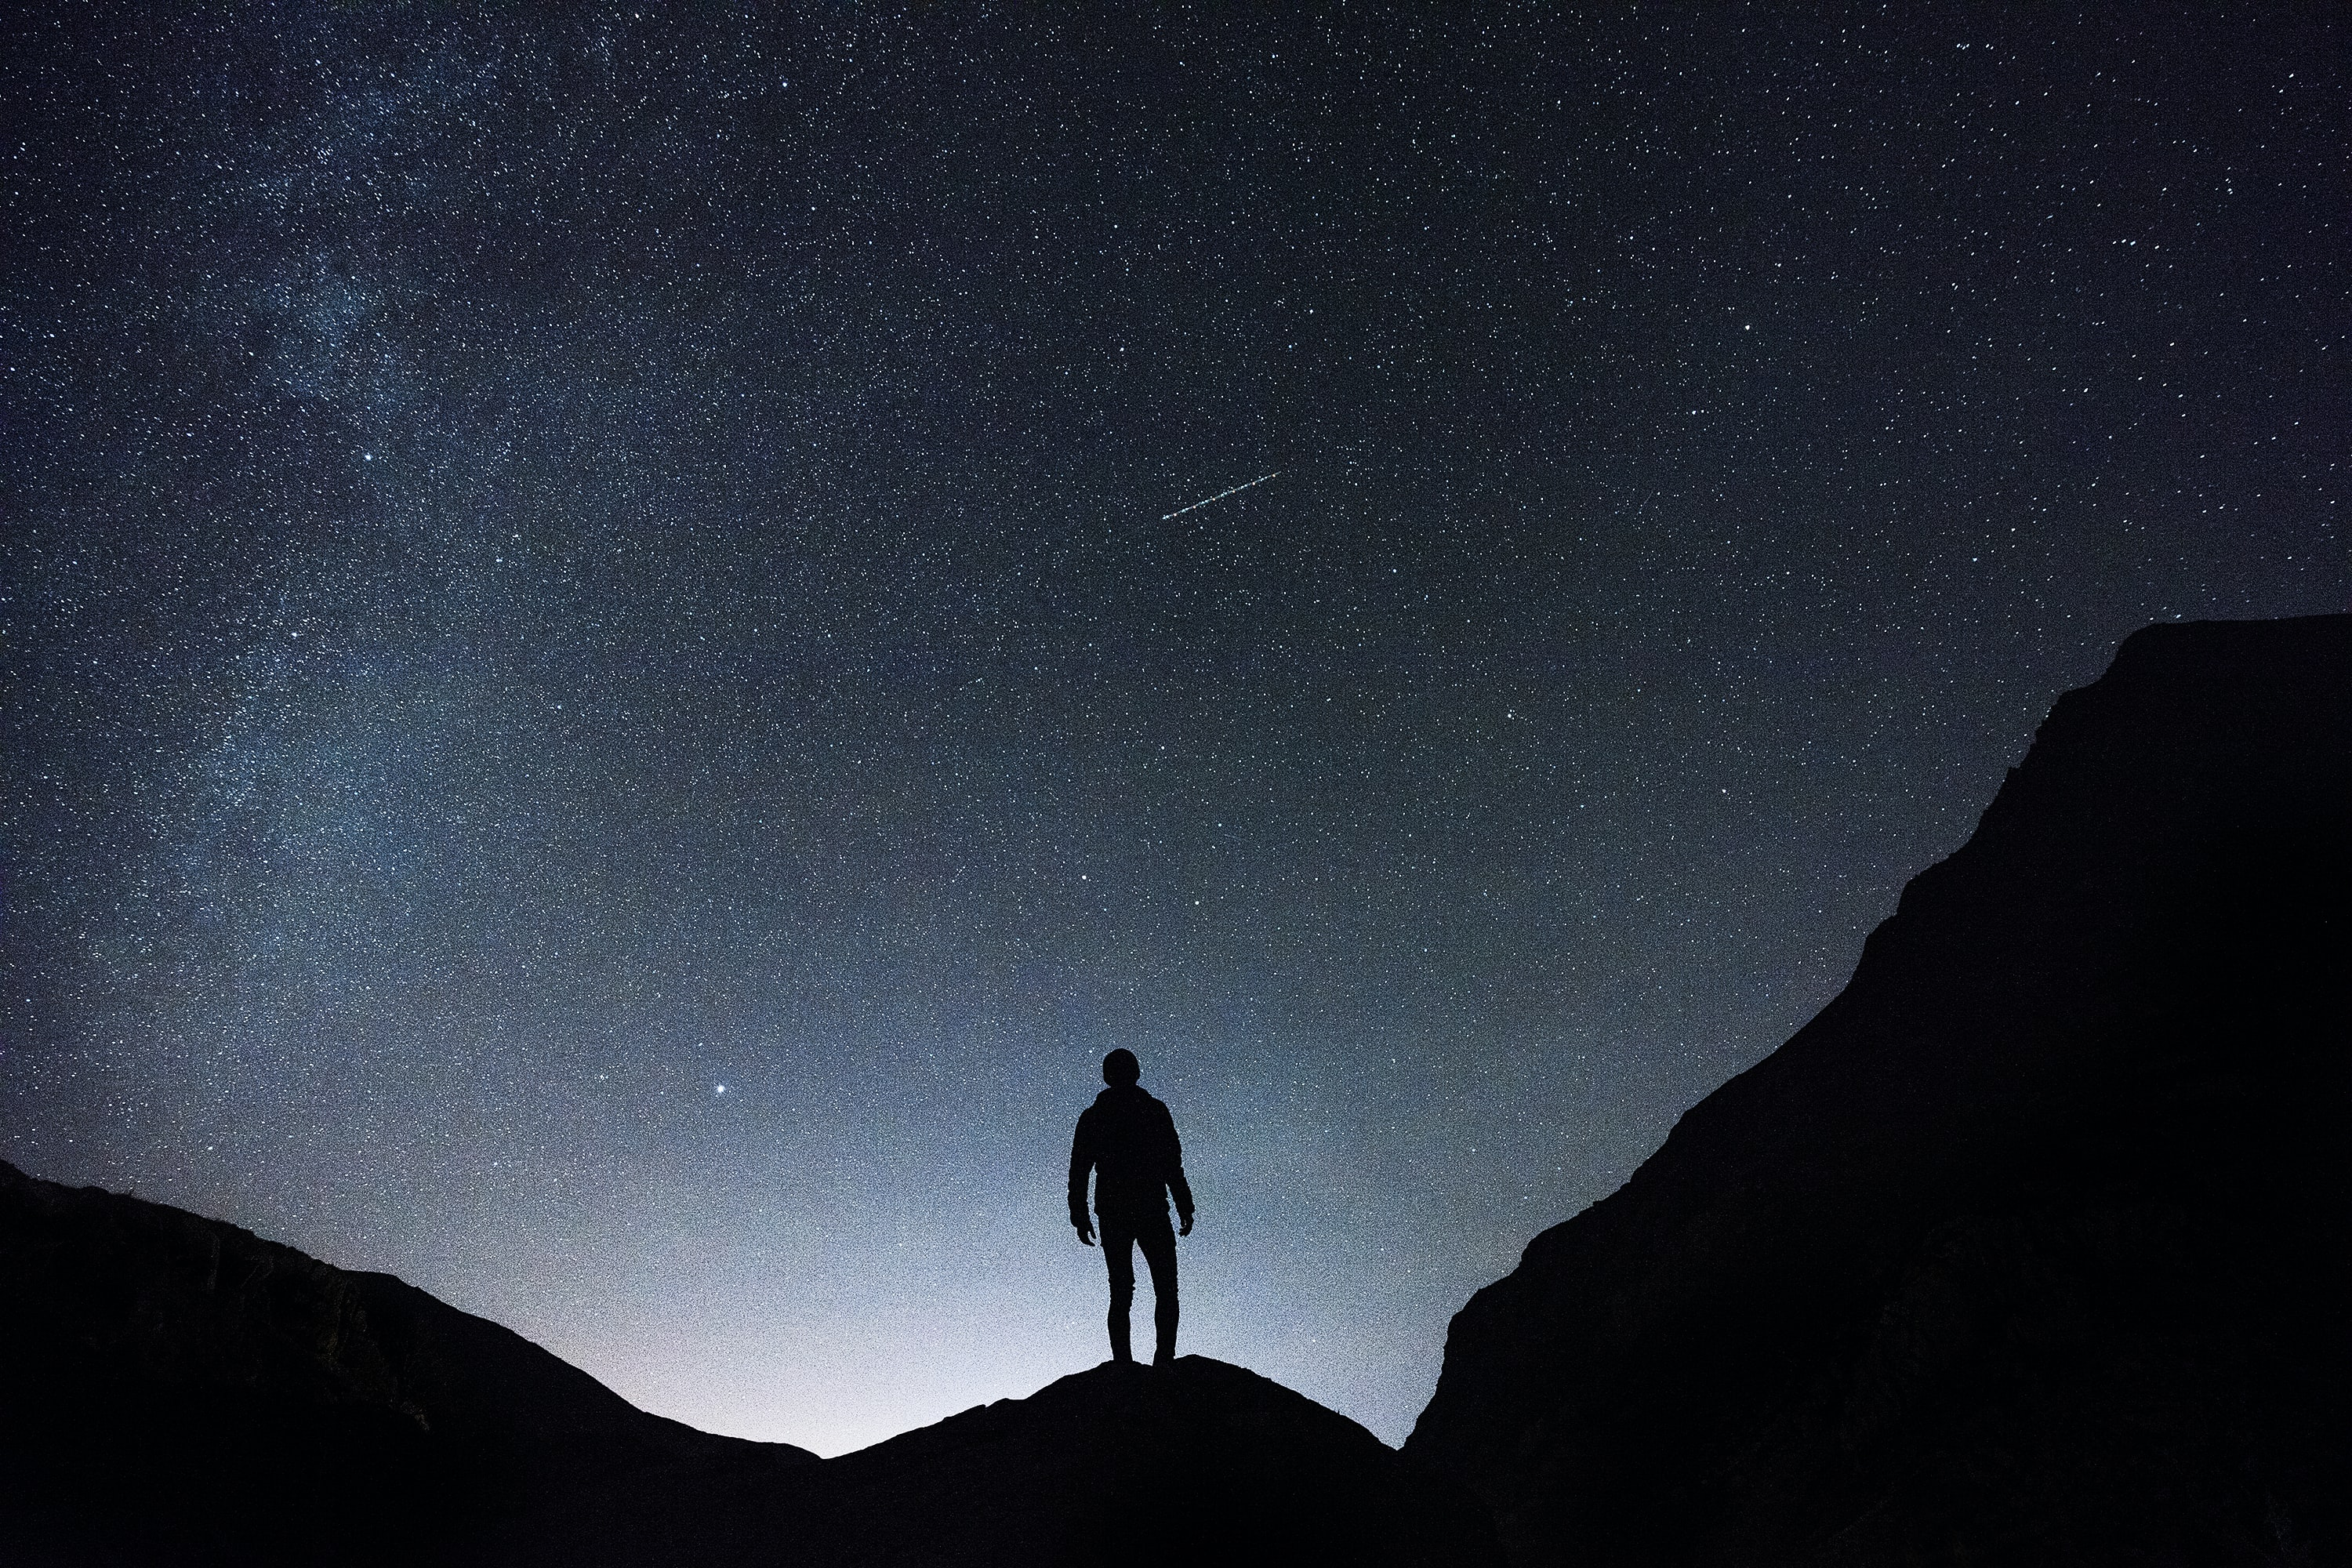 silhouette of man standing on hill during starry night